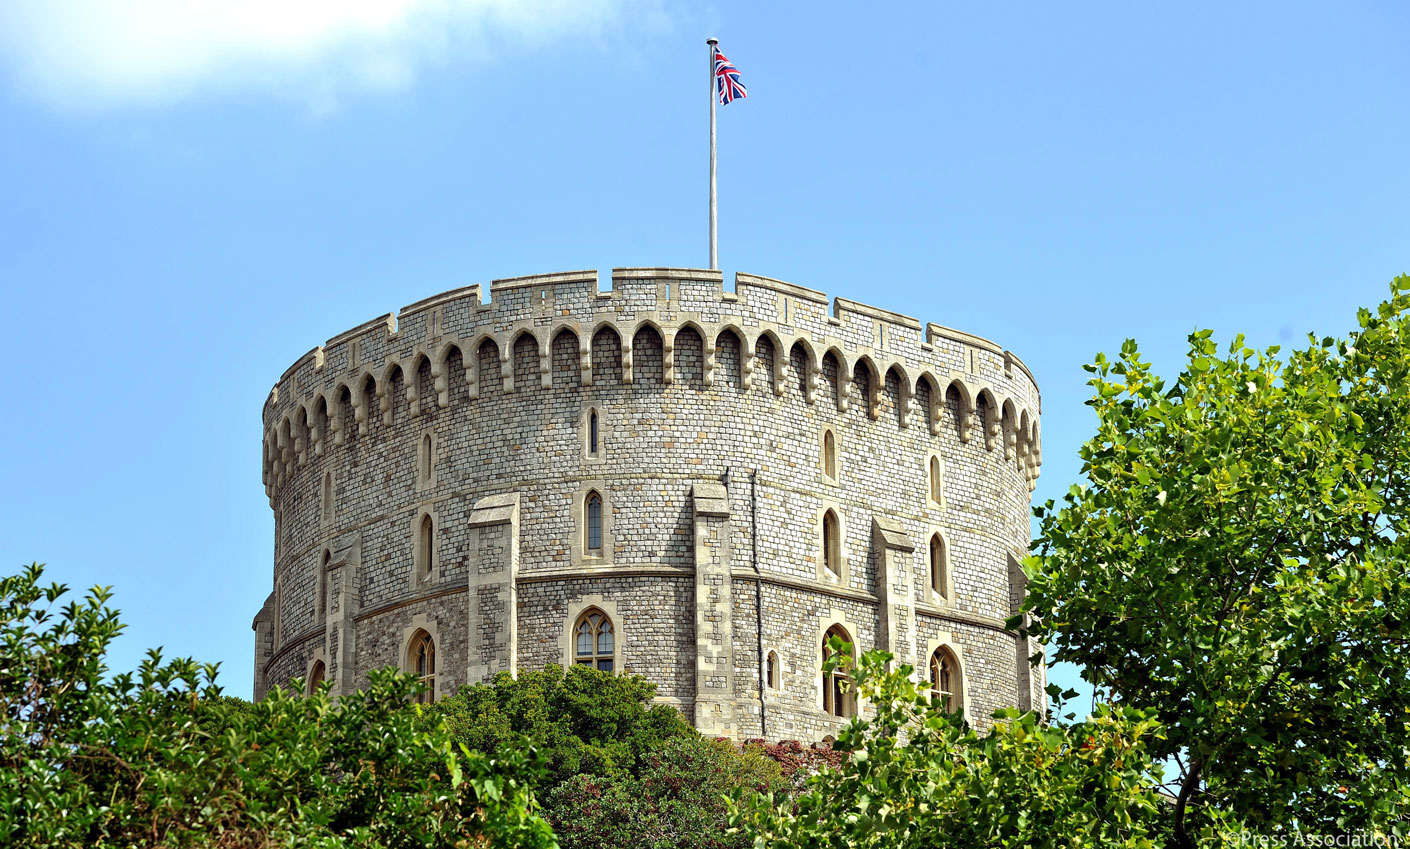 The Round Tower at Windsor Castle where the Georgian Papers are held